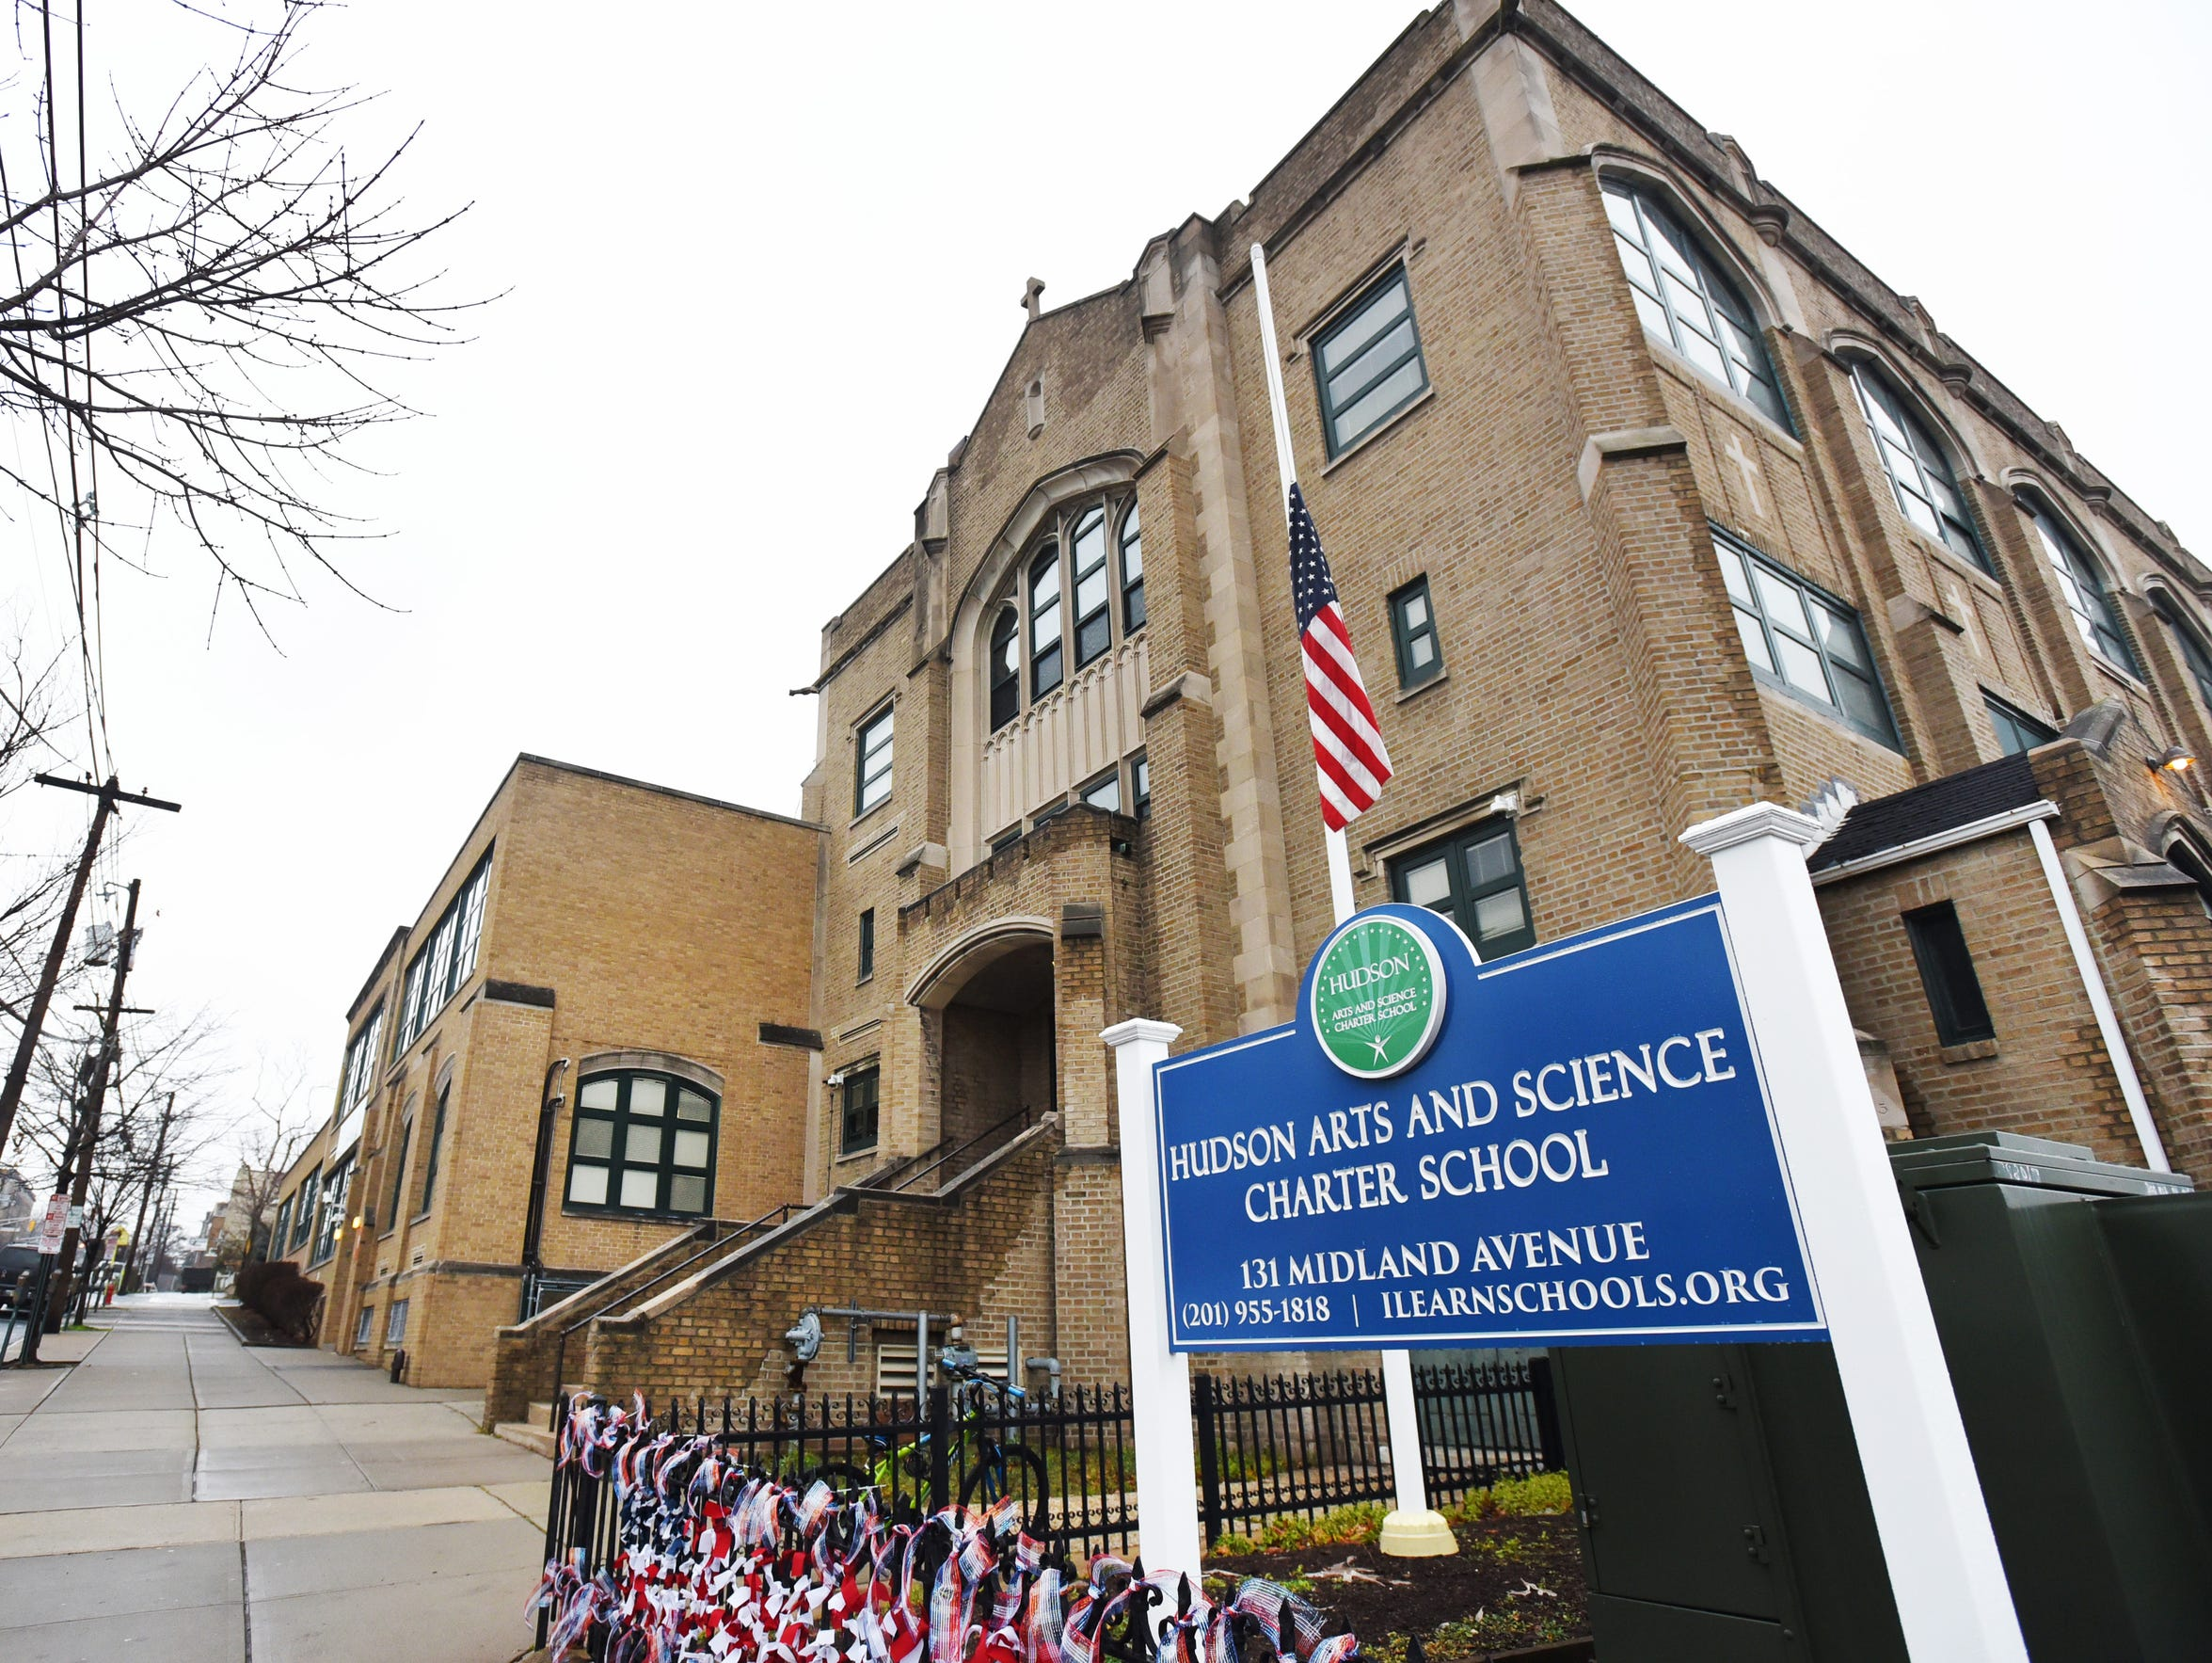 Hudson Arts and Science Charter School, 131 Midland